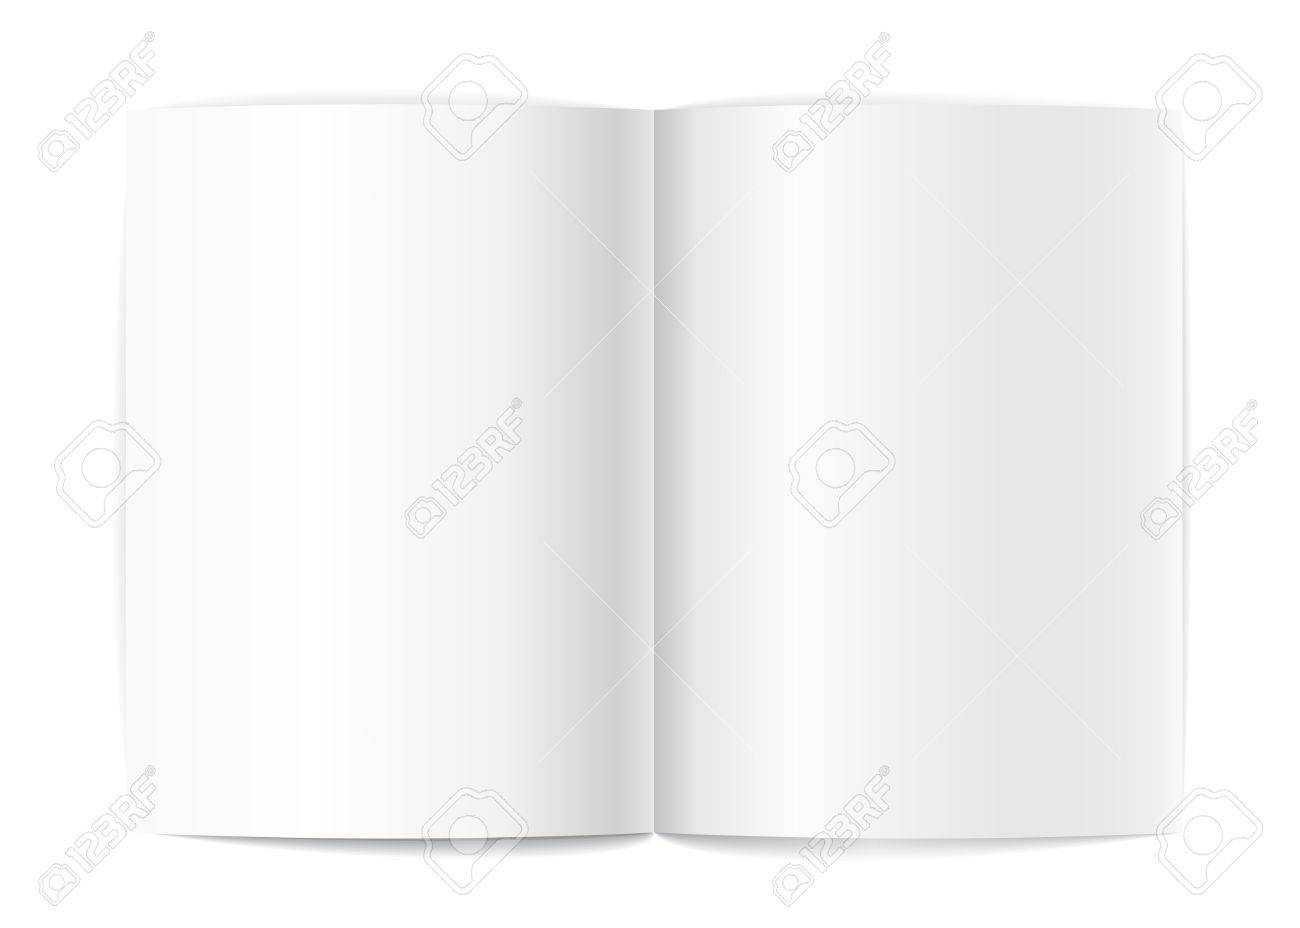 Blank Book Pages Template For A Content Royalty Free Cliparts ...